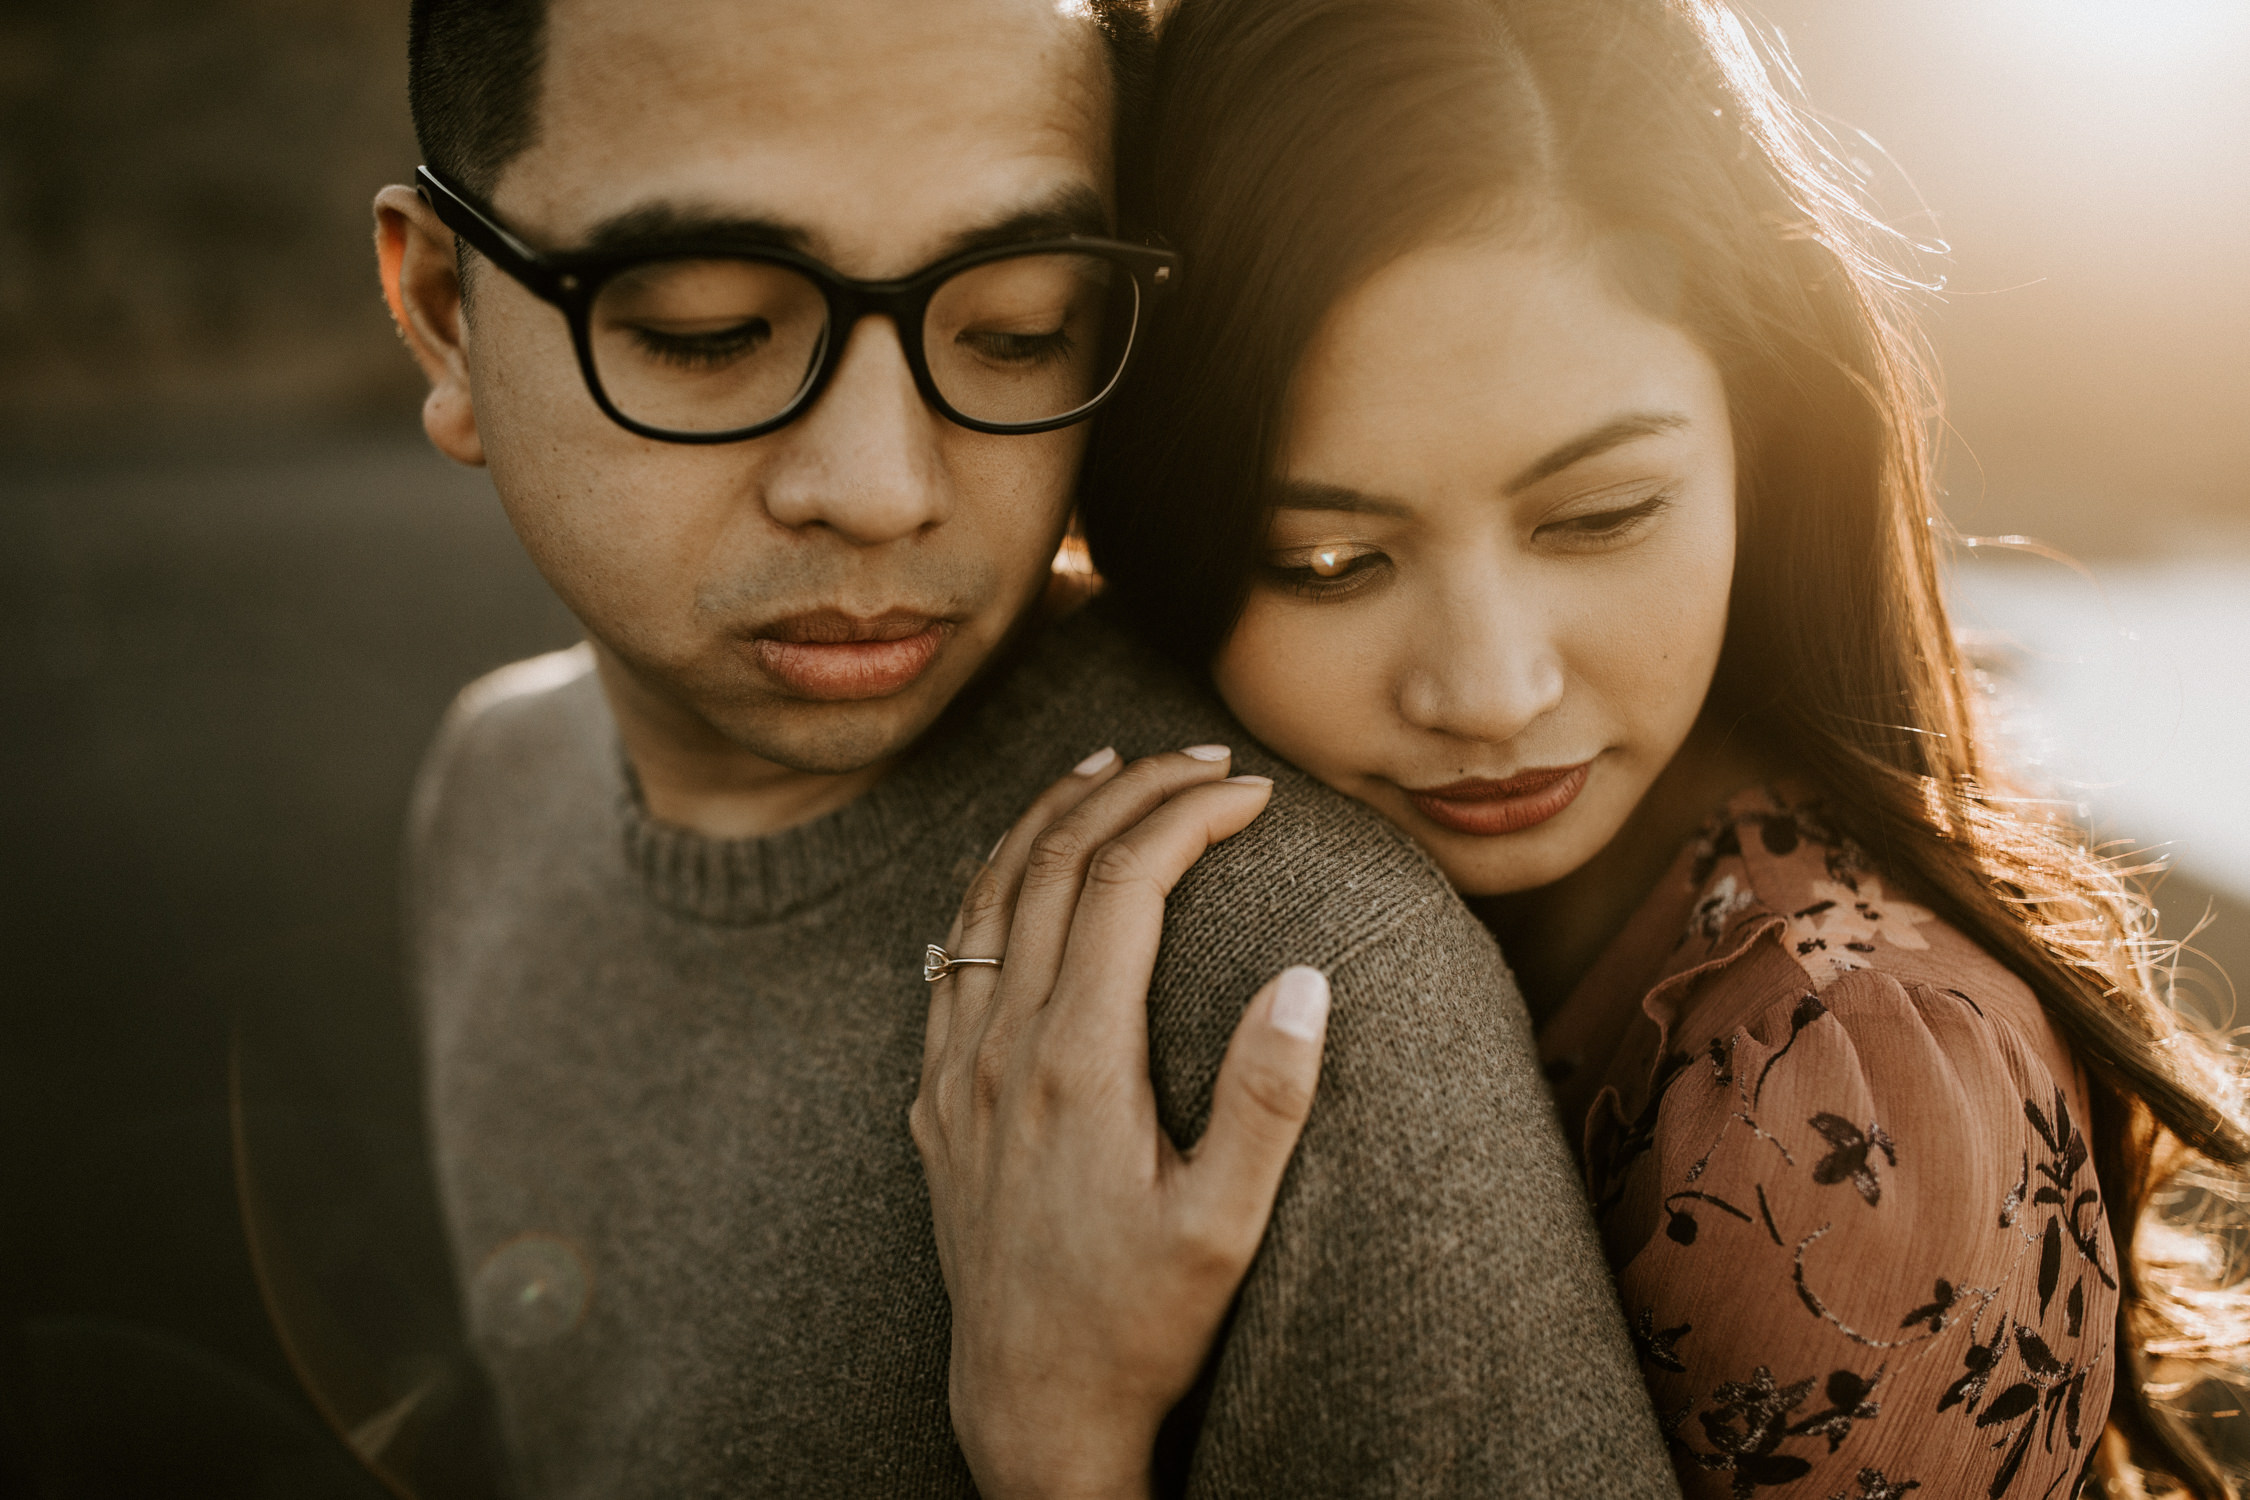 couple-intimate-engagement-session-northern-california-54.jpg